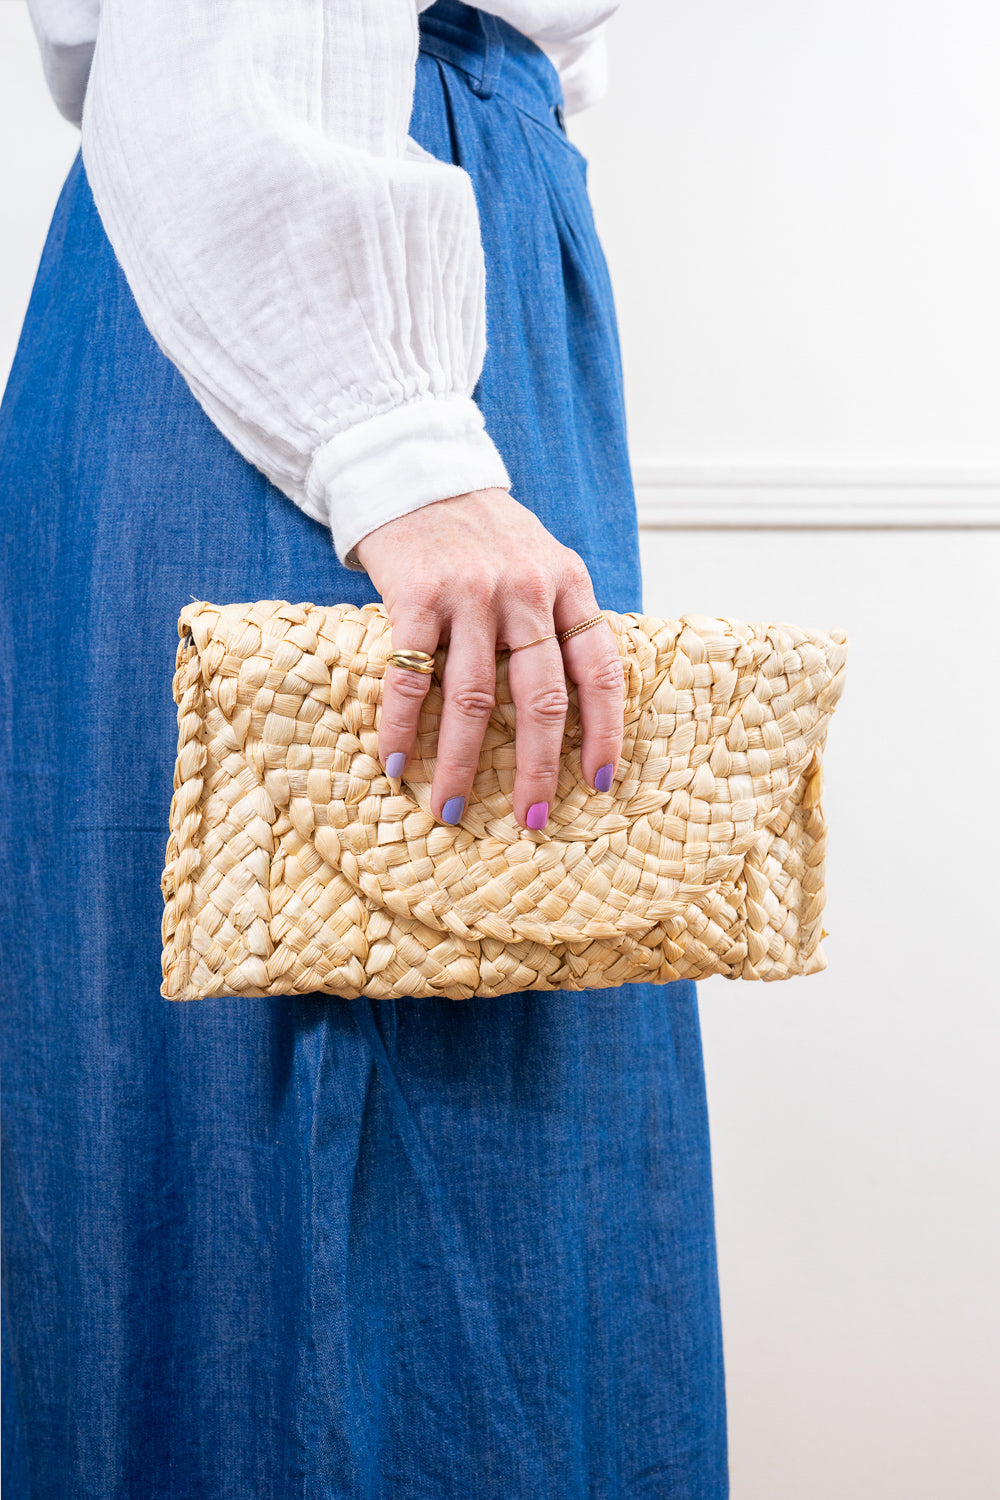 straw clutch purse in women's hand